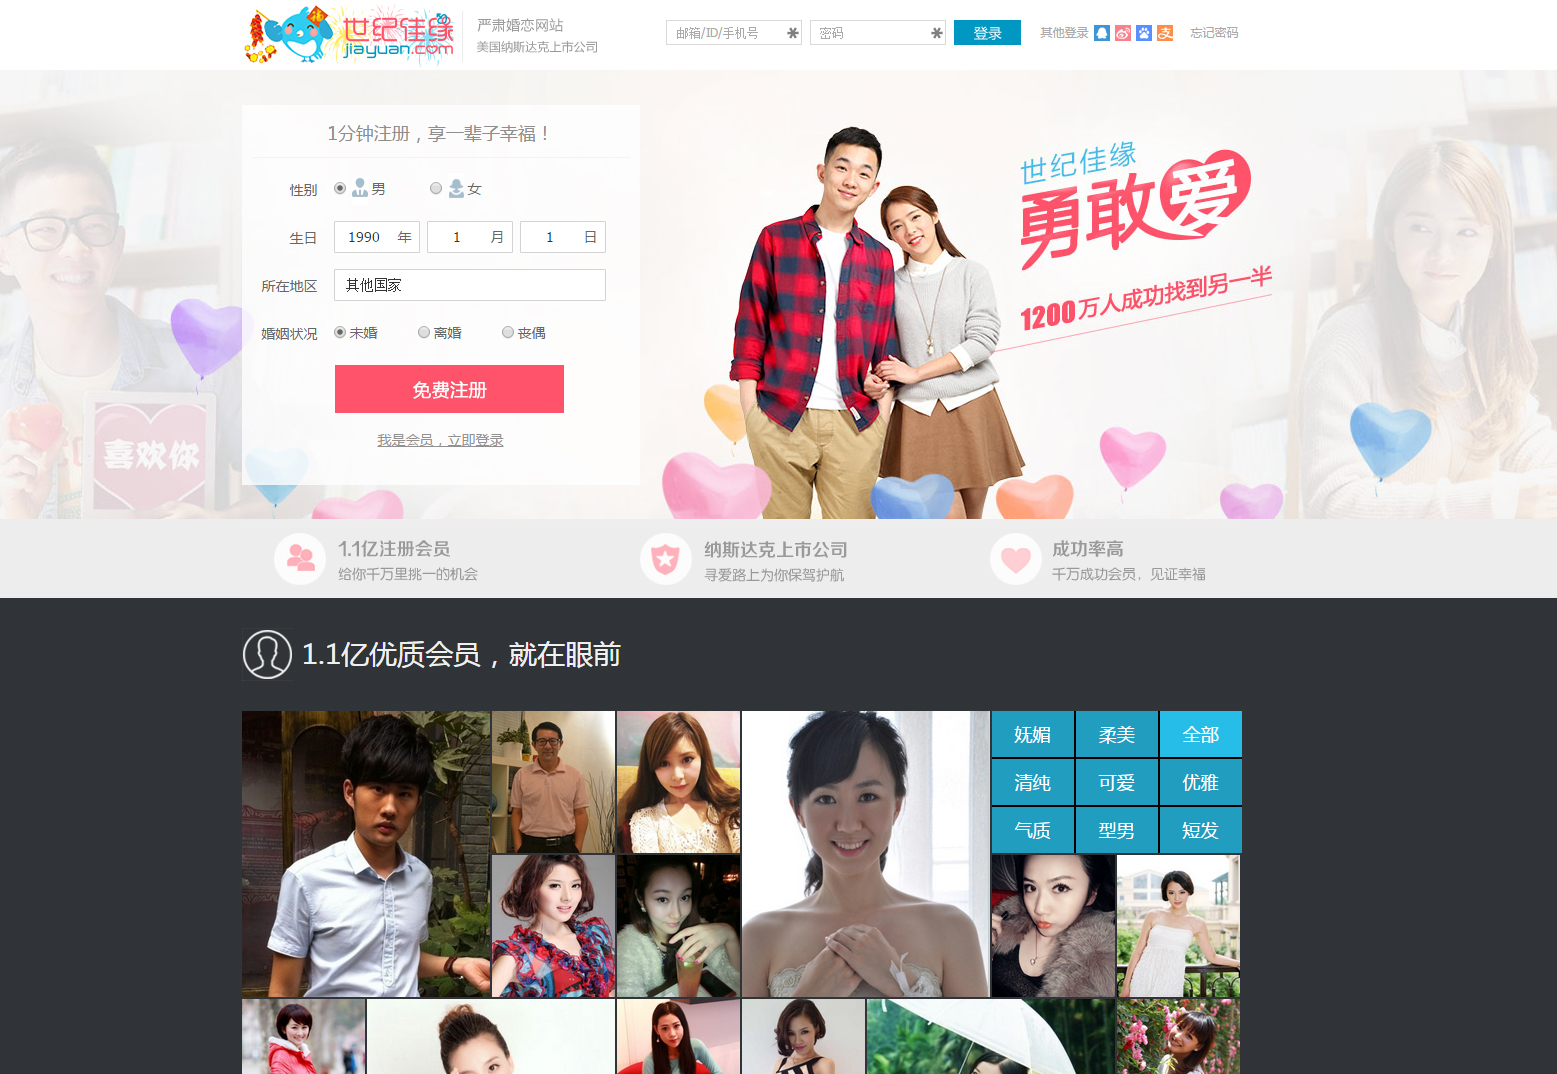 Taiwan Dating - Meet Taiwanese Singles Free